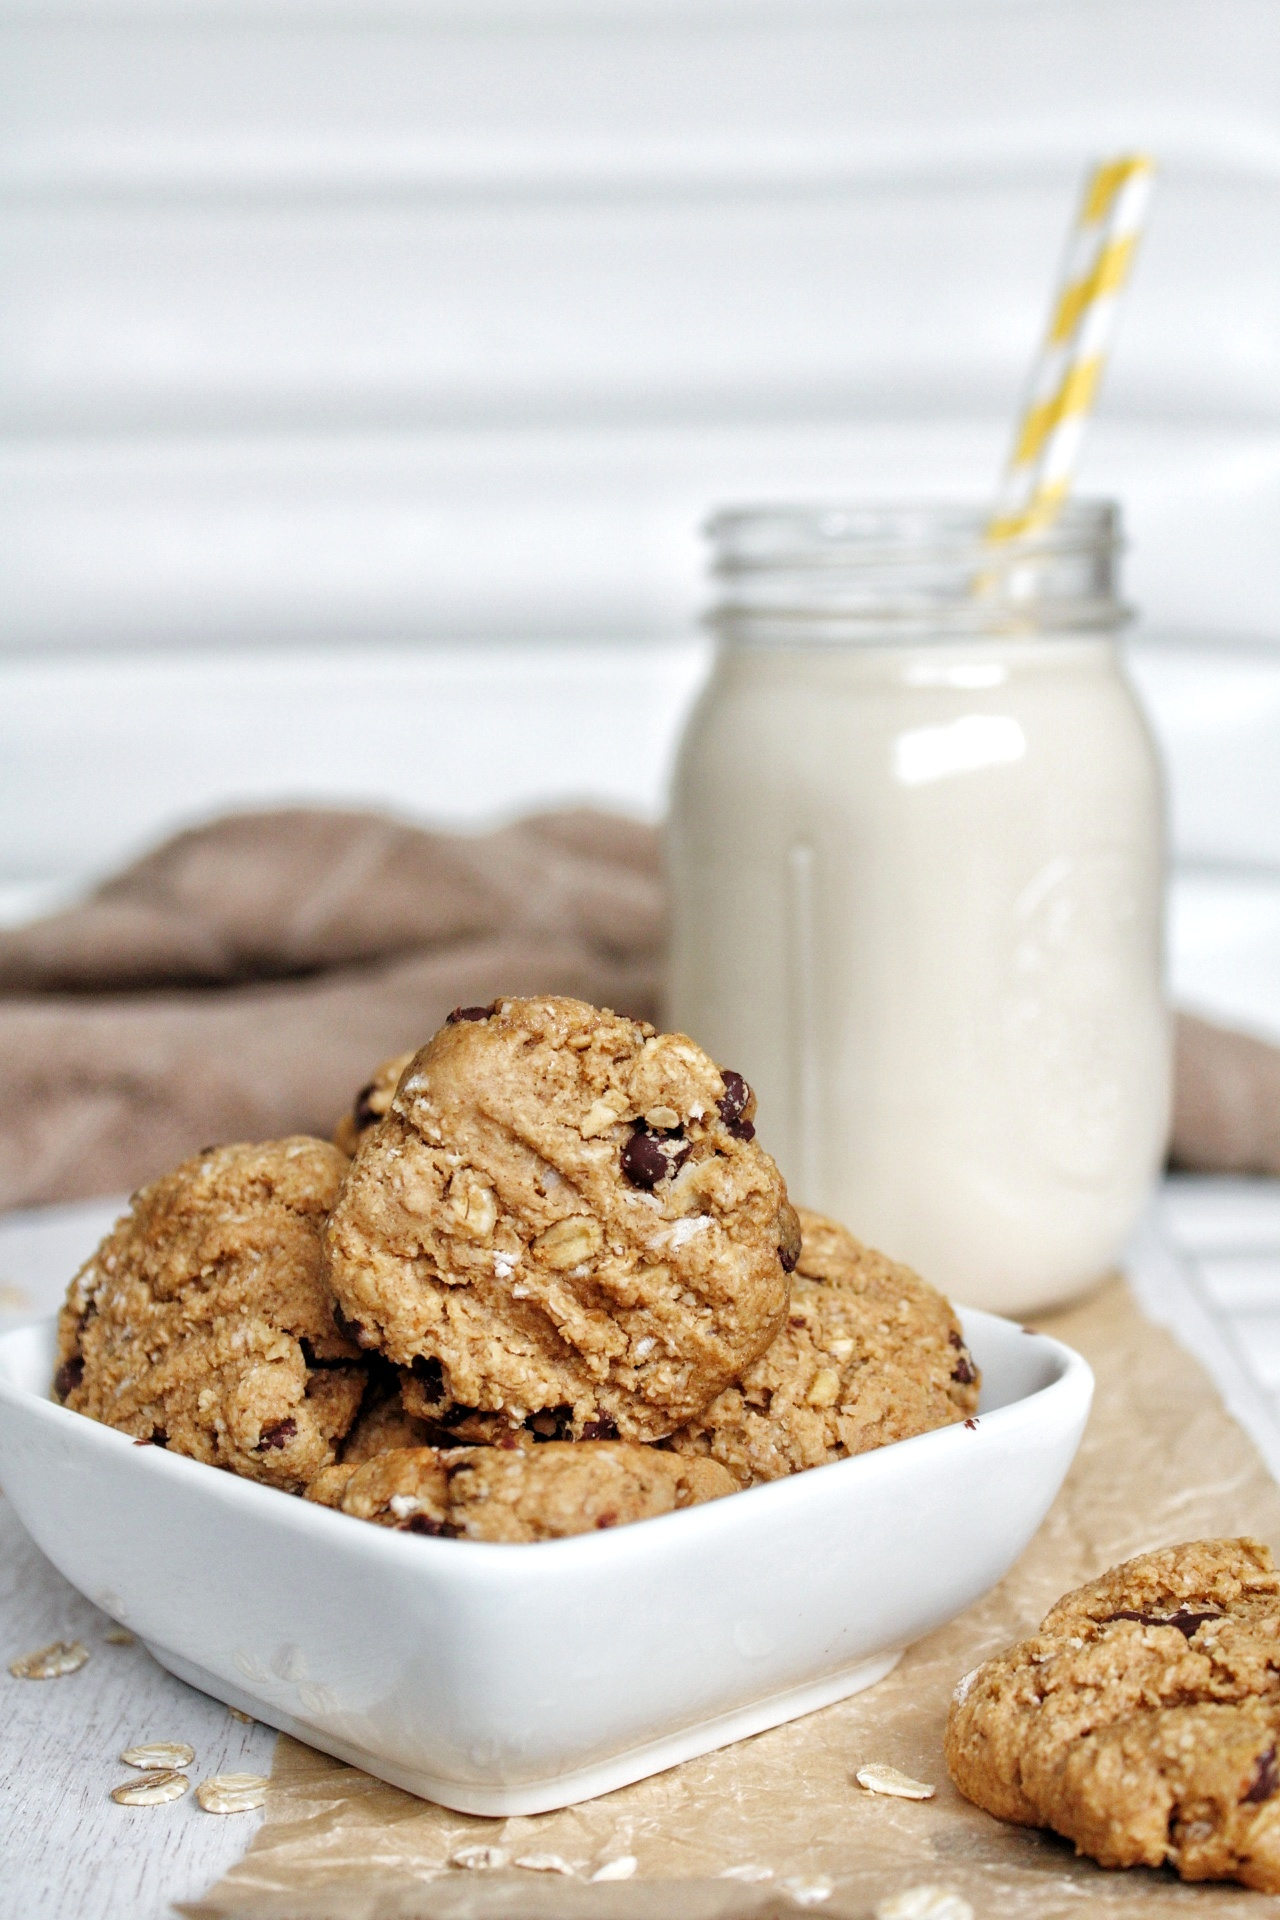 Oatmeal cookies in a small, glass serving dish